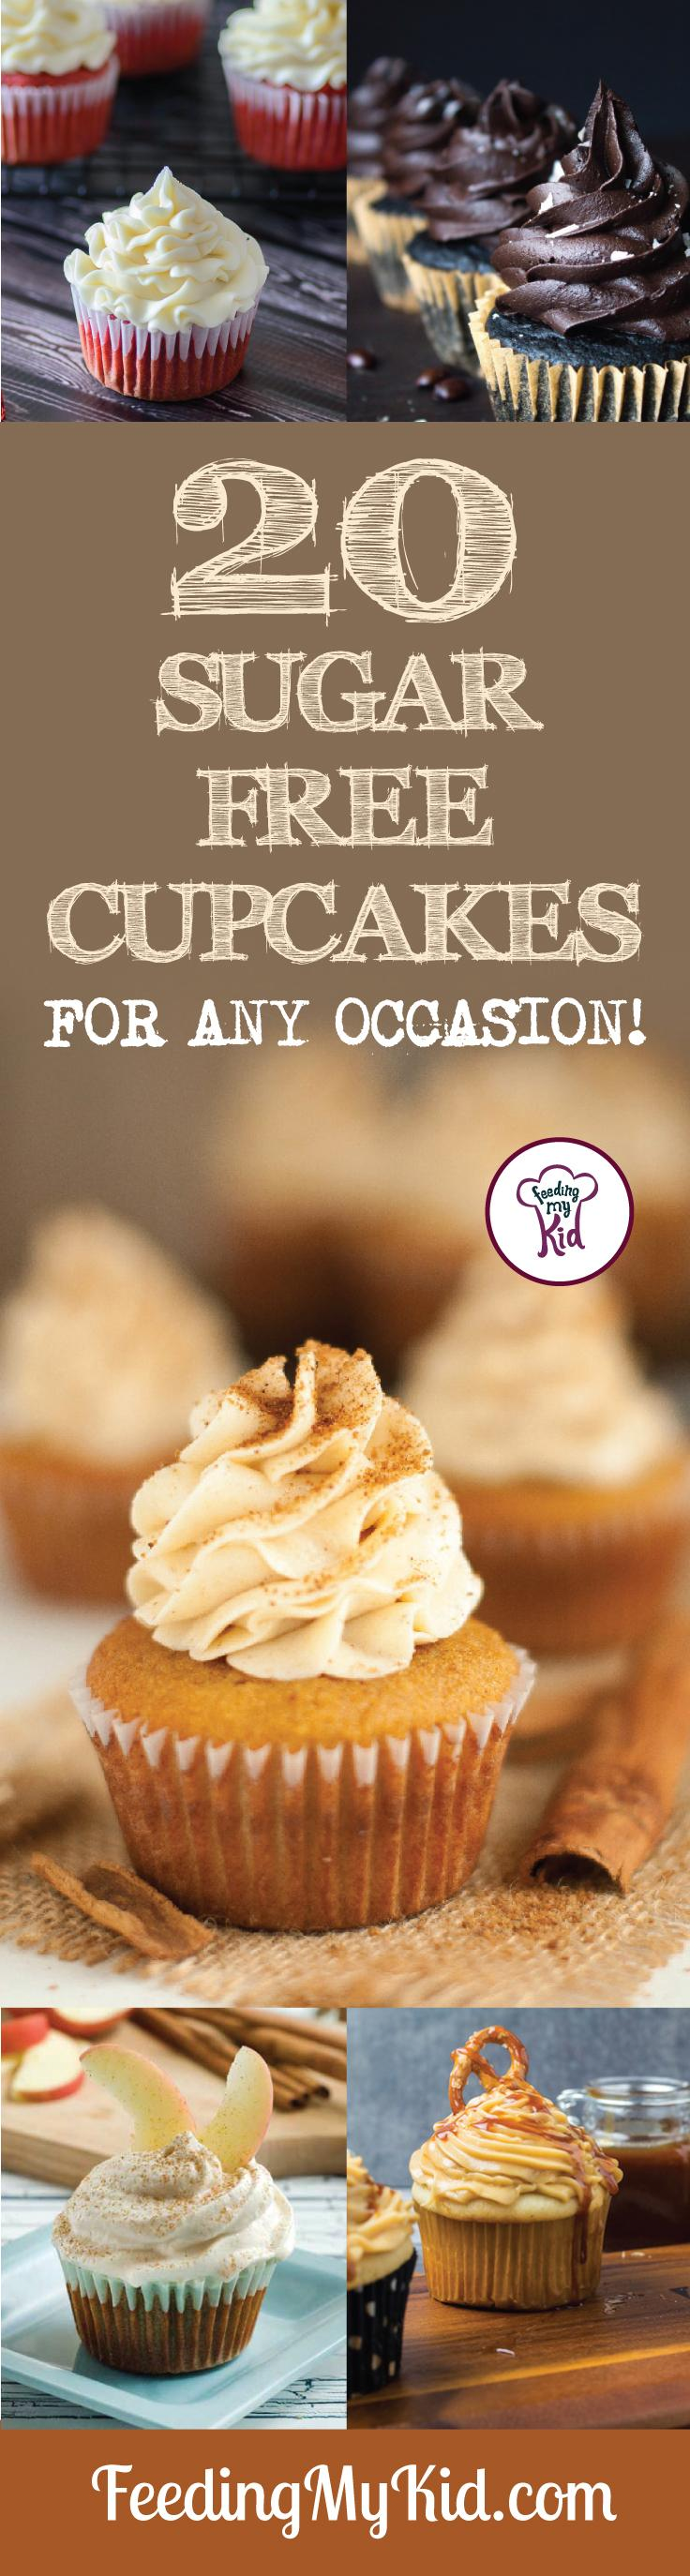 Try these amazing sugar free cupcakes! They're perfect for any and all occasions! Feeding My Kid is a filled with all the information you need about how to raise your kids, from healthy tips to nutritious recipes. #FeedingMyKid #desserts #sugarfree #cupcakerecipes